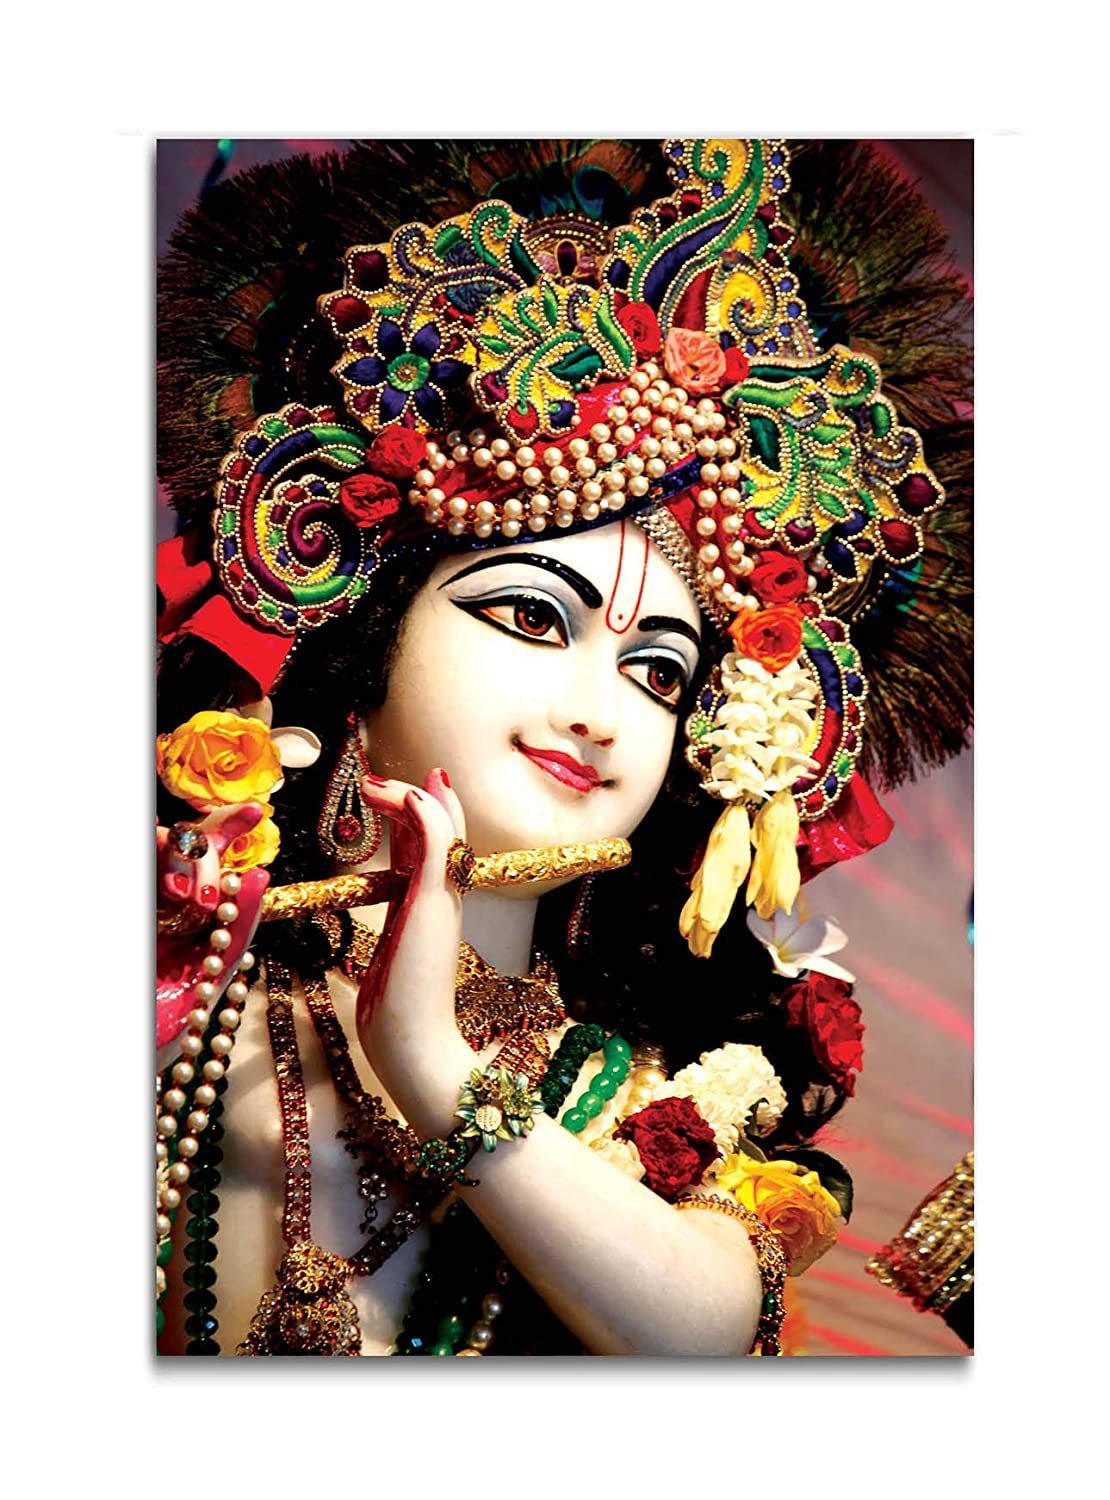 Tamatina God Wall Poster Lord Krishna Large Size Poster Hd Quality 36 Inches X 24 Inches 92 Cms X 61 Cms Amazon In Home Kitchen